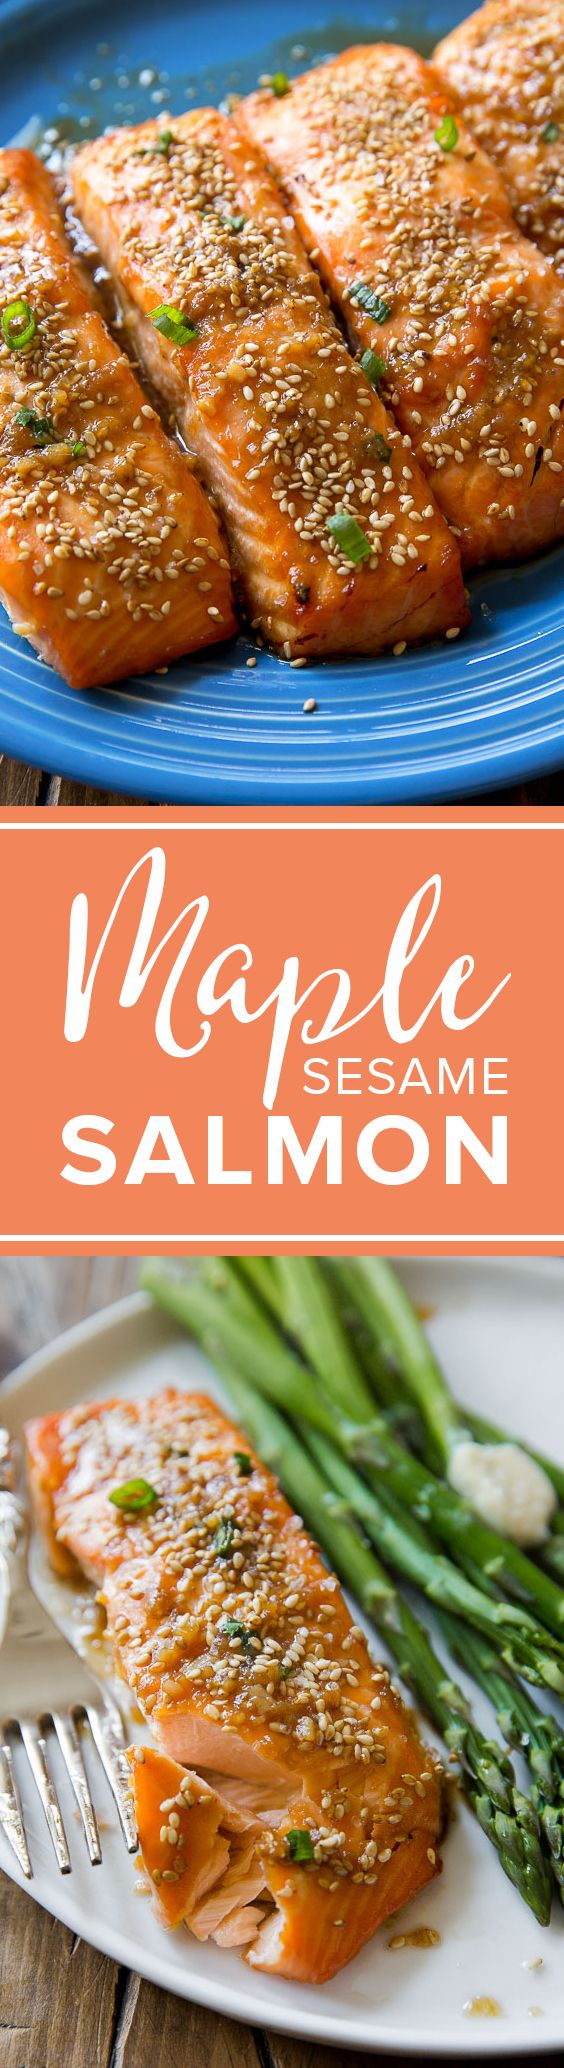 Super easy healthy weeknight dinner is baked maple sesame glazed salmon! Healthy recipe http://sallysbakingaddiction.com/2016/04/15/easy-maple-sesame-salmon/